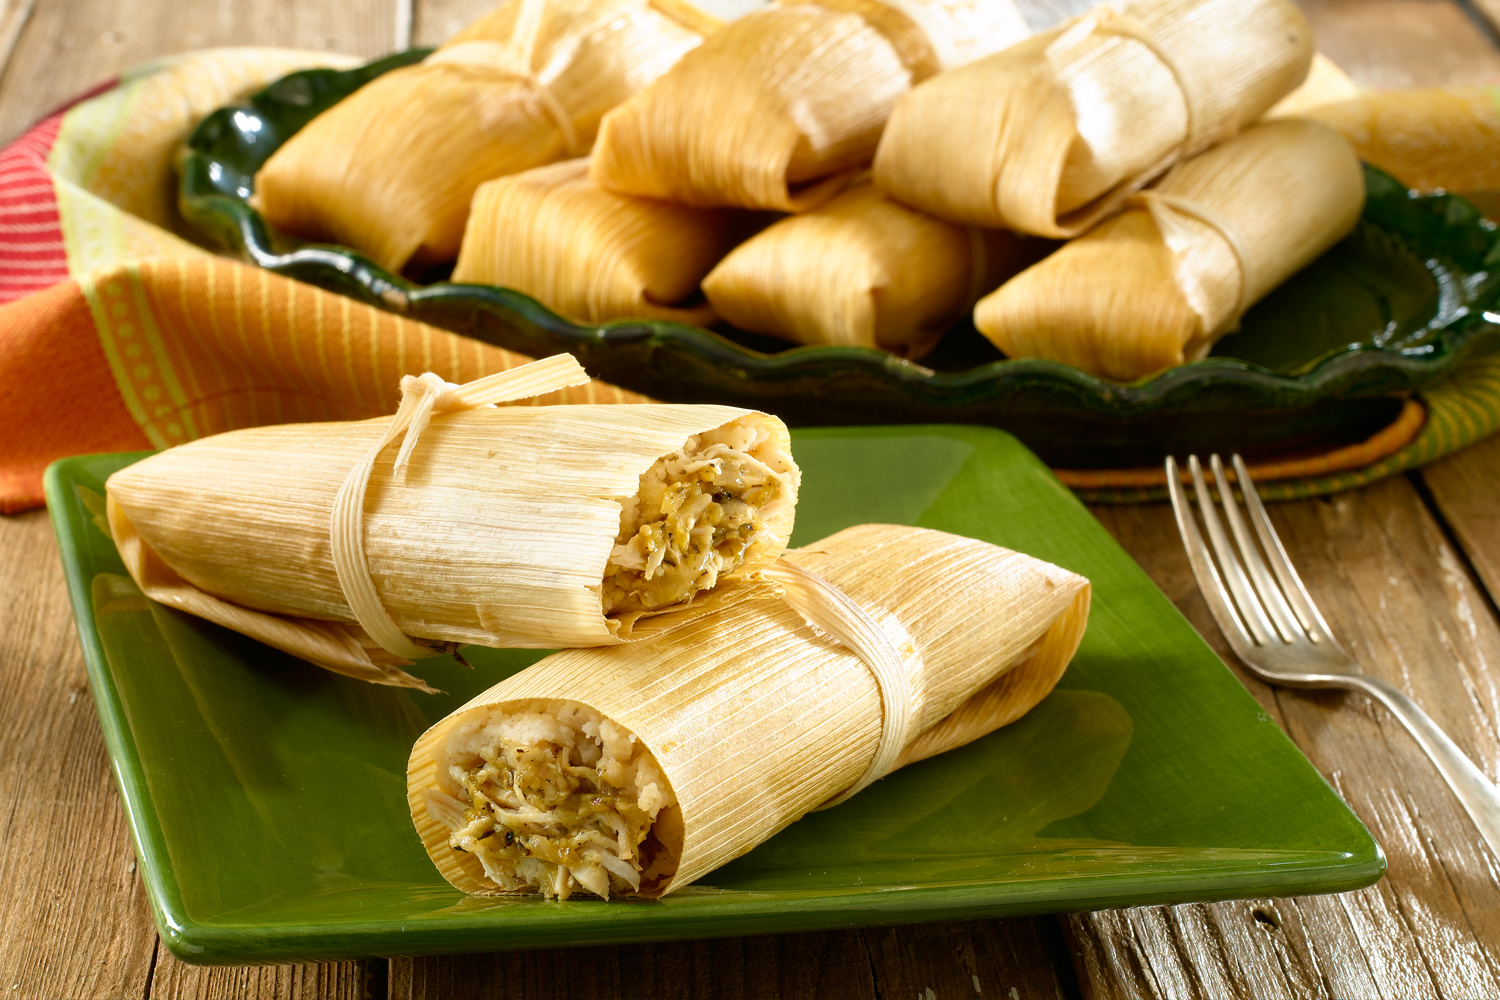 Two Simple Twists For More Nutritious Tamales